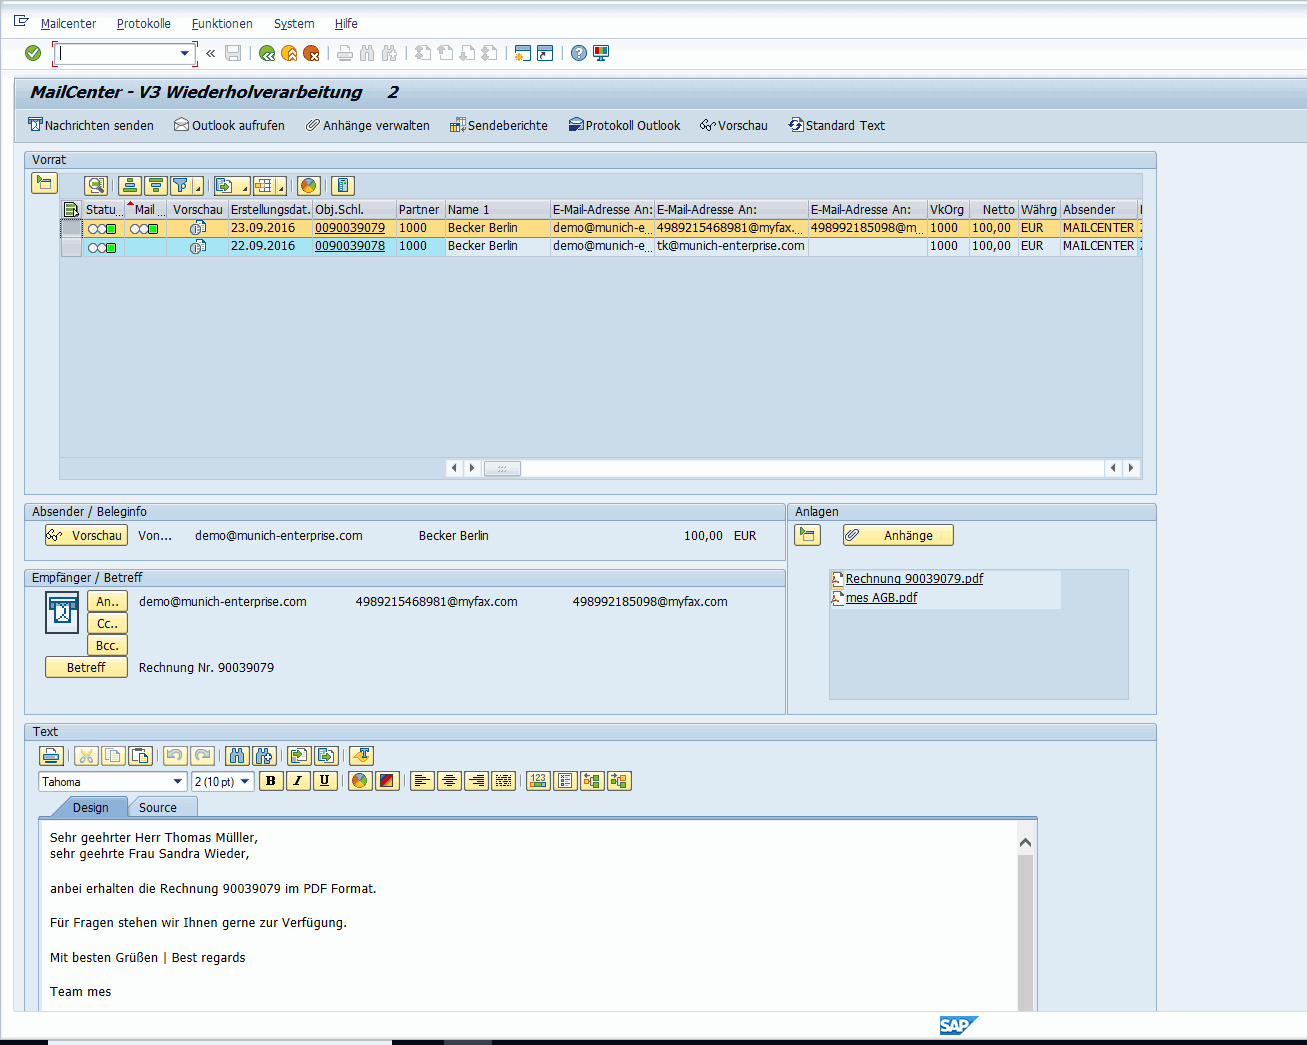 SAP Mail to Fax - send with MailCenter